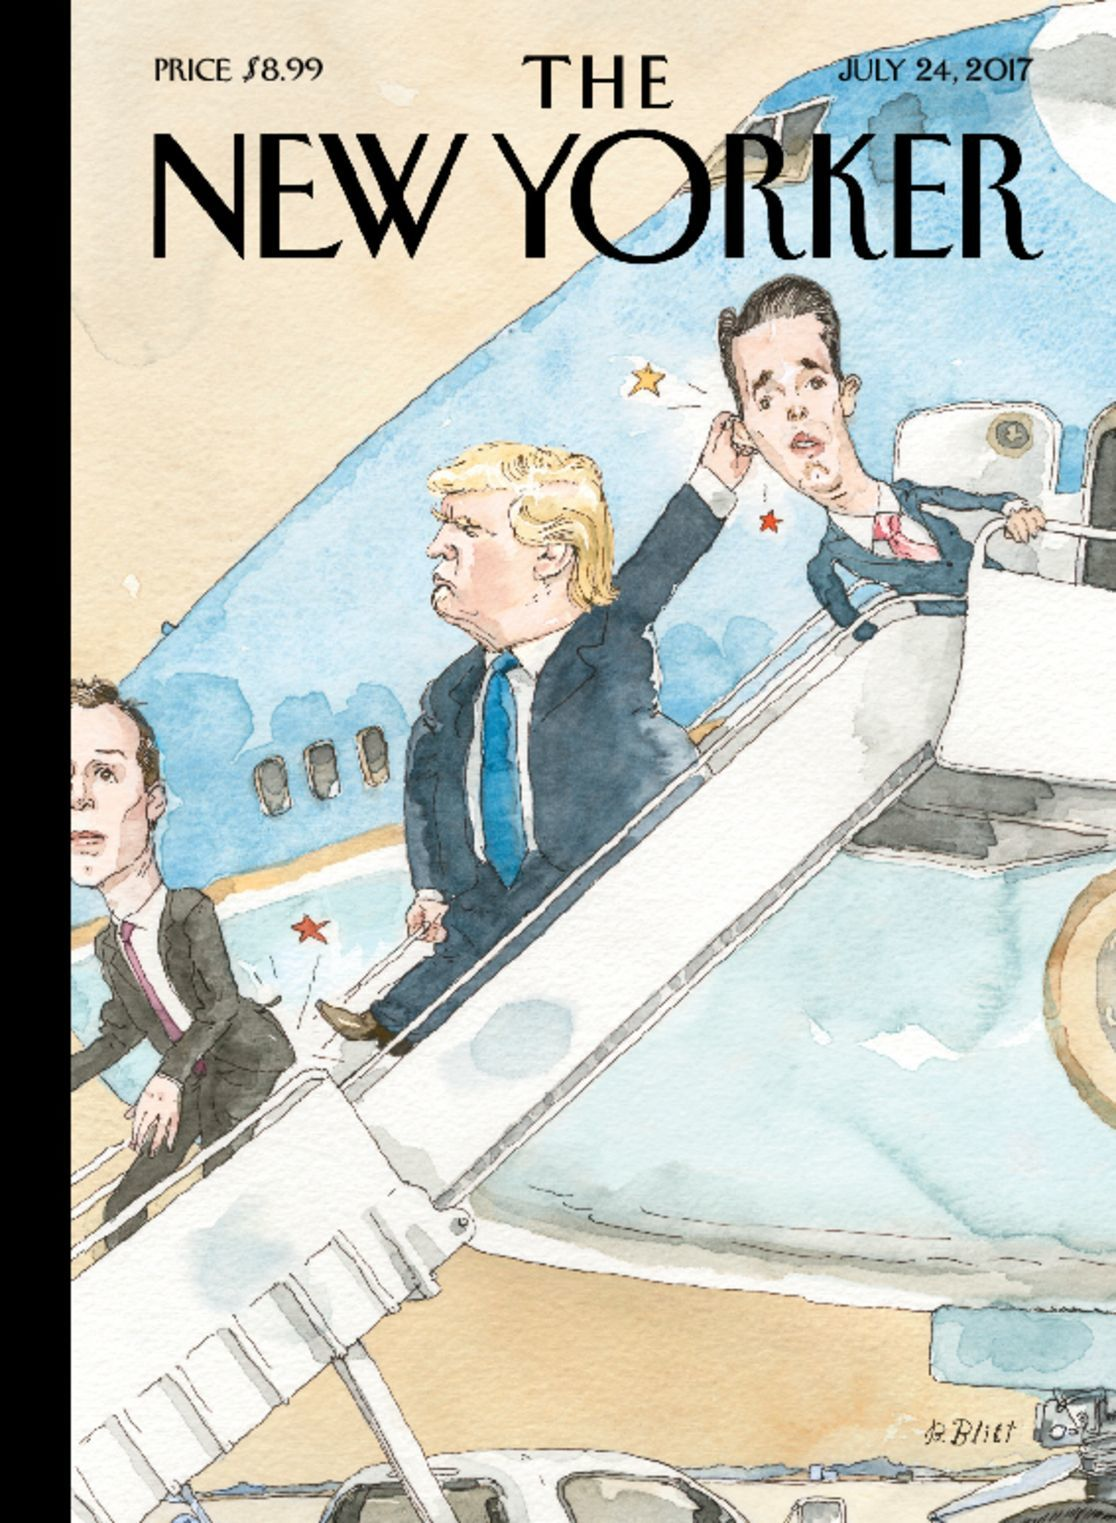 New Yorker Magazine | Subscribe to The New Yorker ...